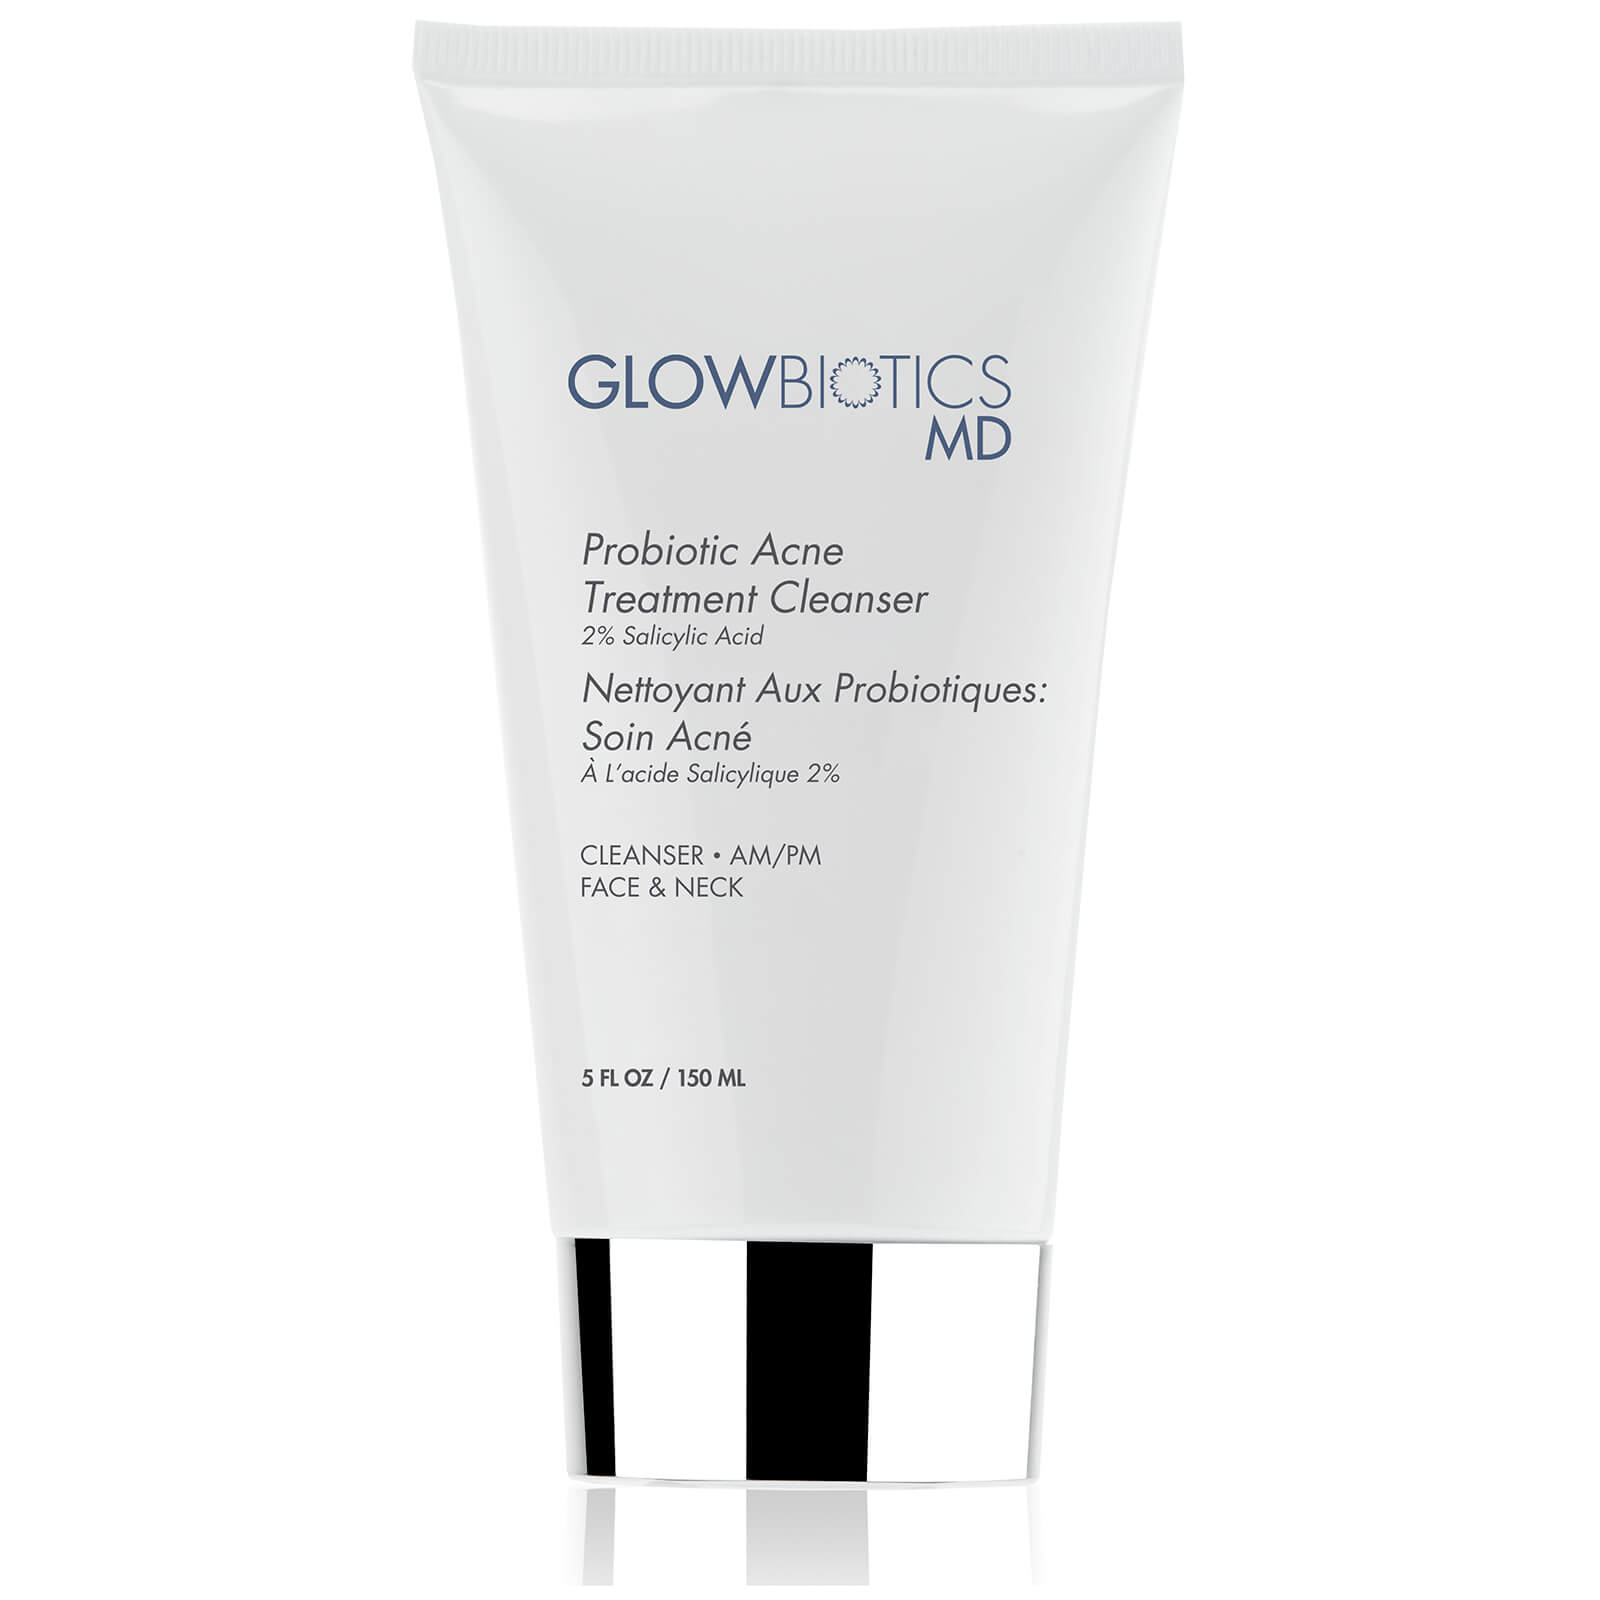 Glowbiotics MD Probiotic Acne Treatment Cleanser (2% Salicylic Acid)